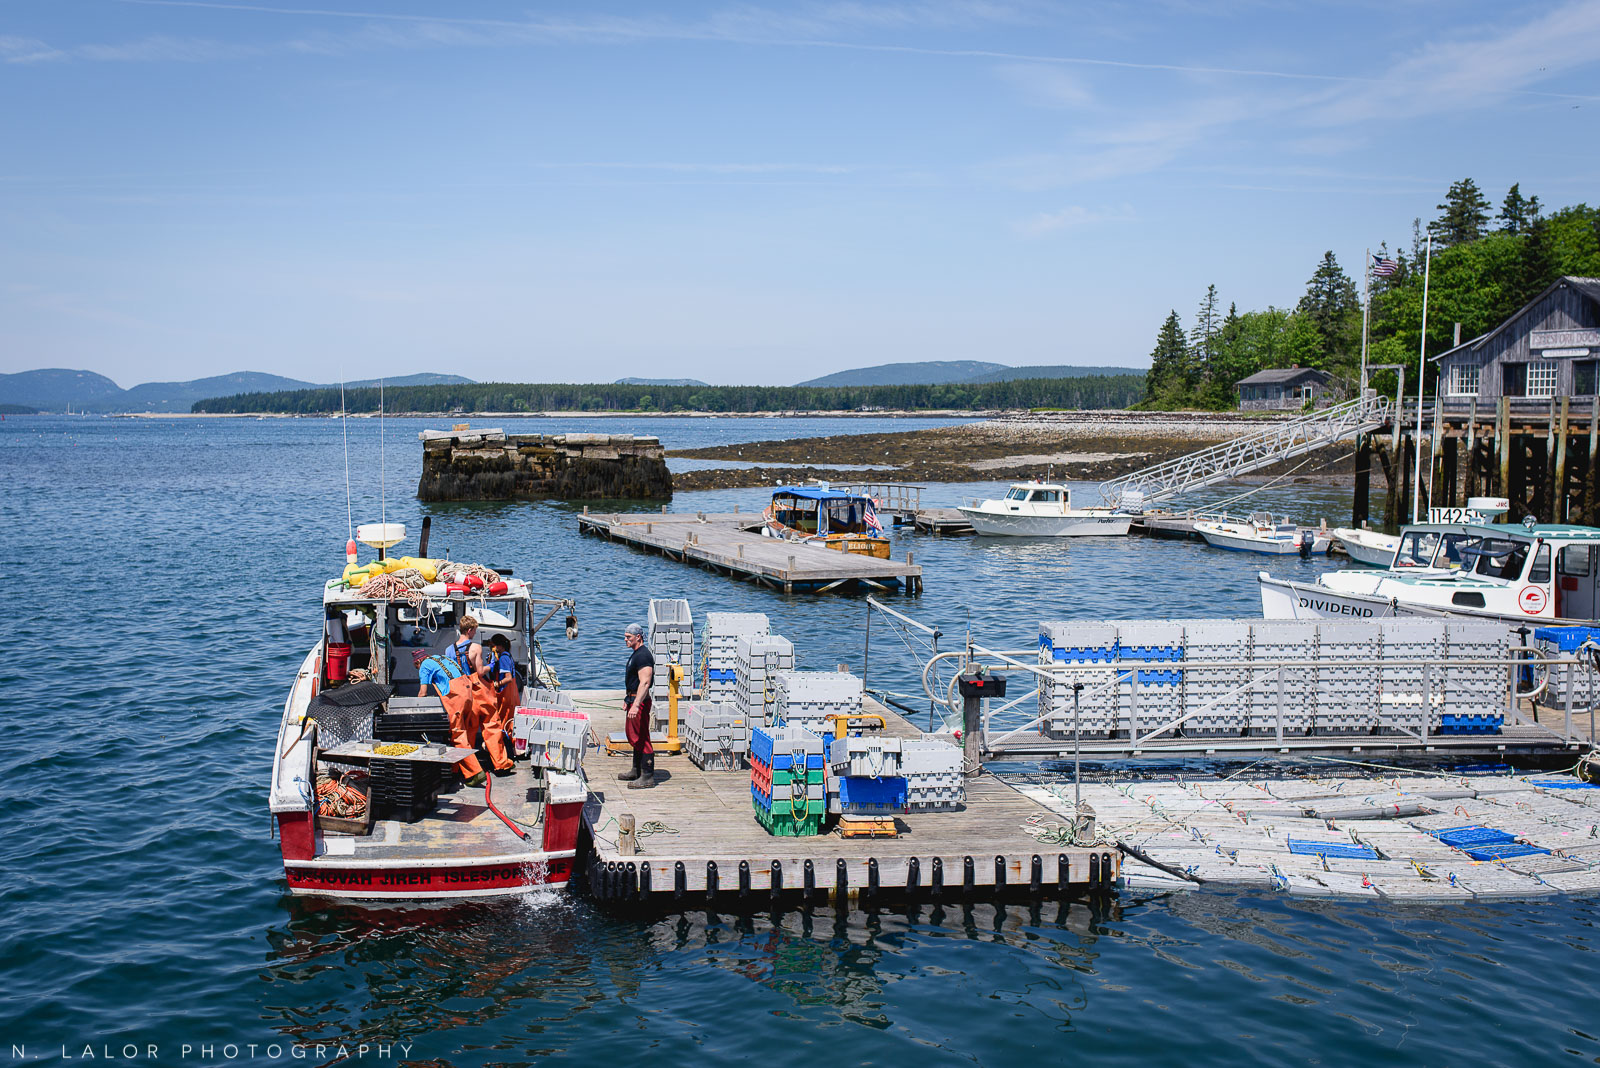 Lobster fishermen! Acadia National Park, Little Cranberry Island, Maine. Photo by N Lalor Photography.